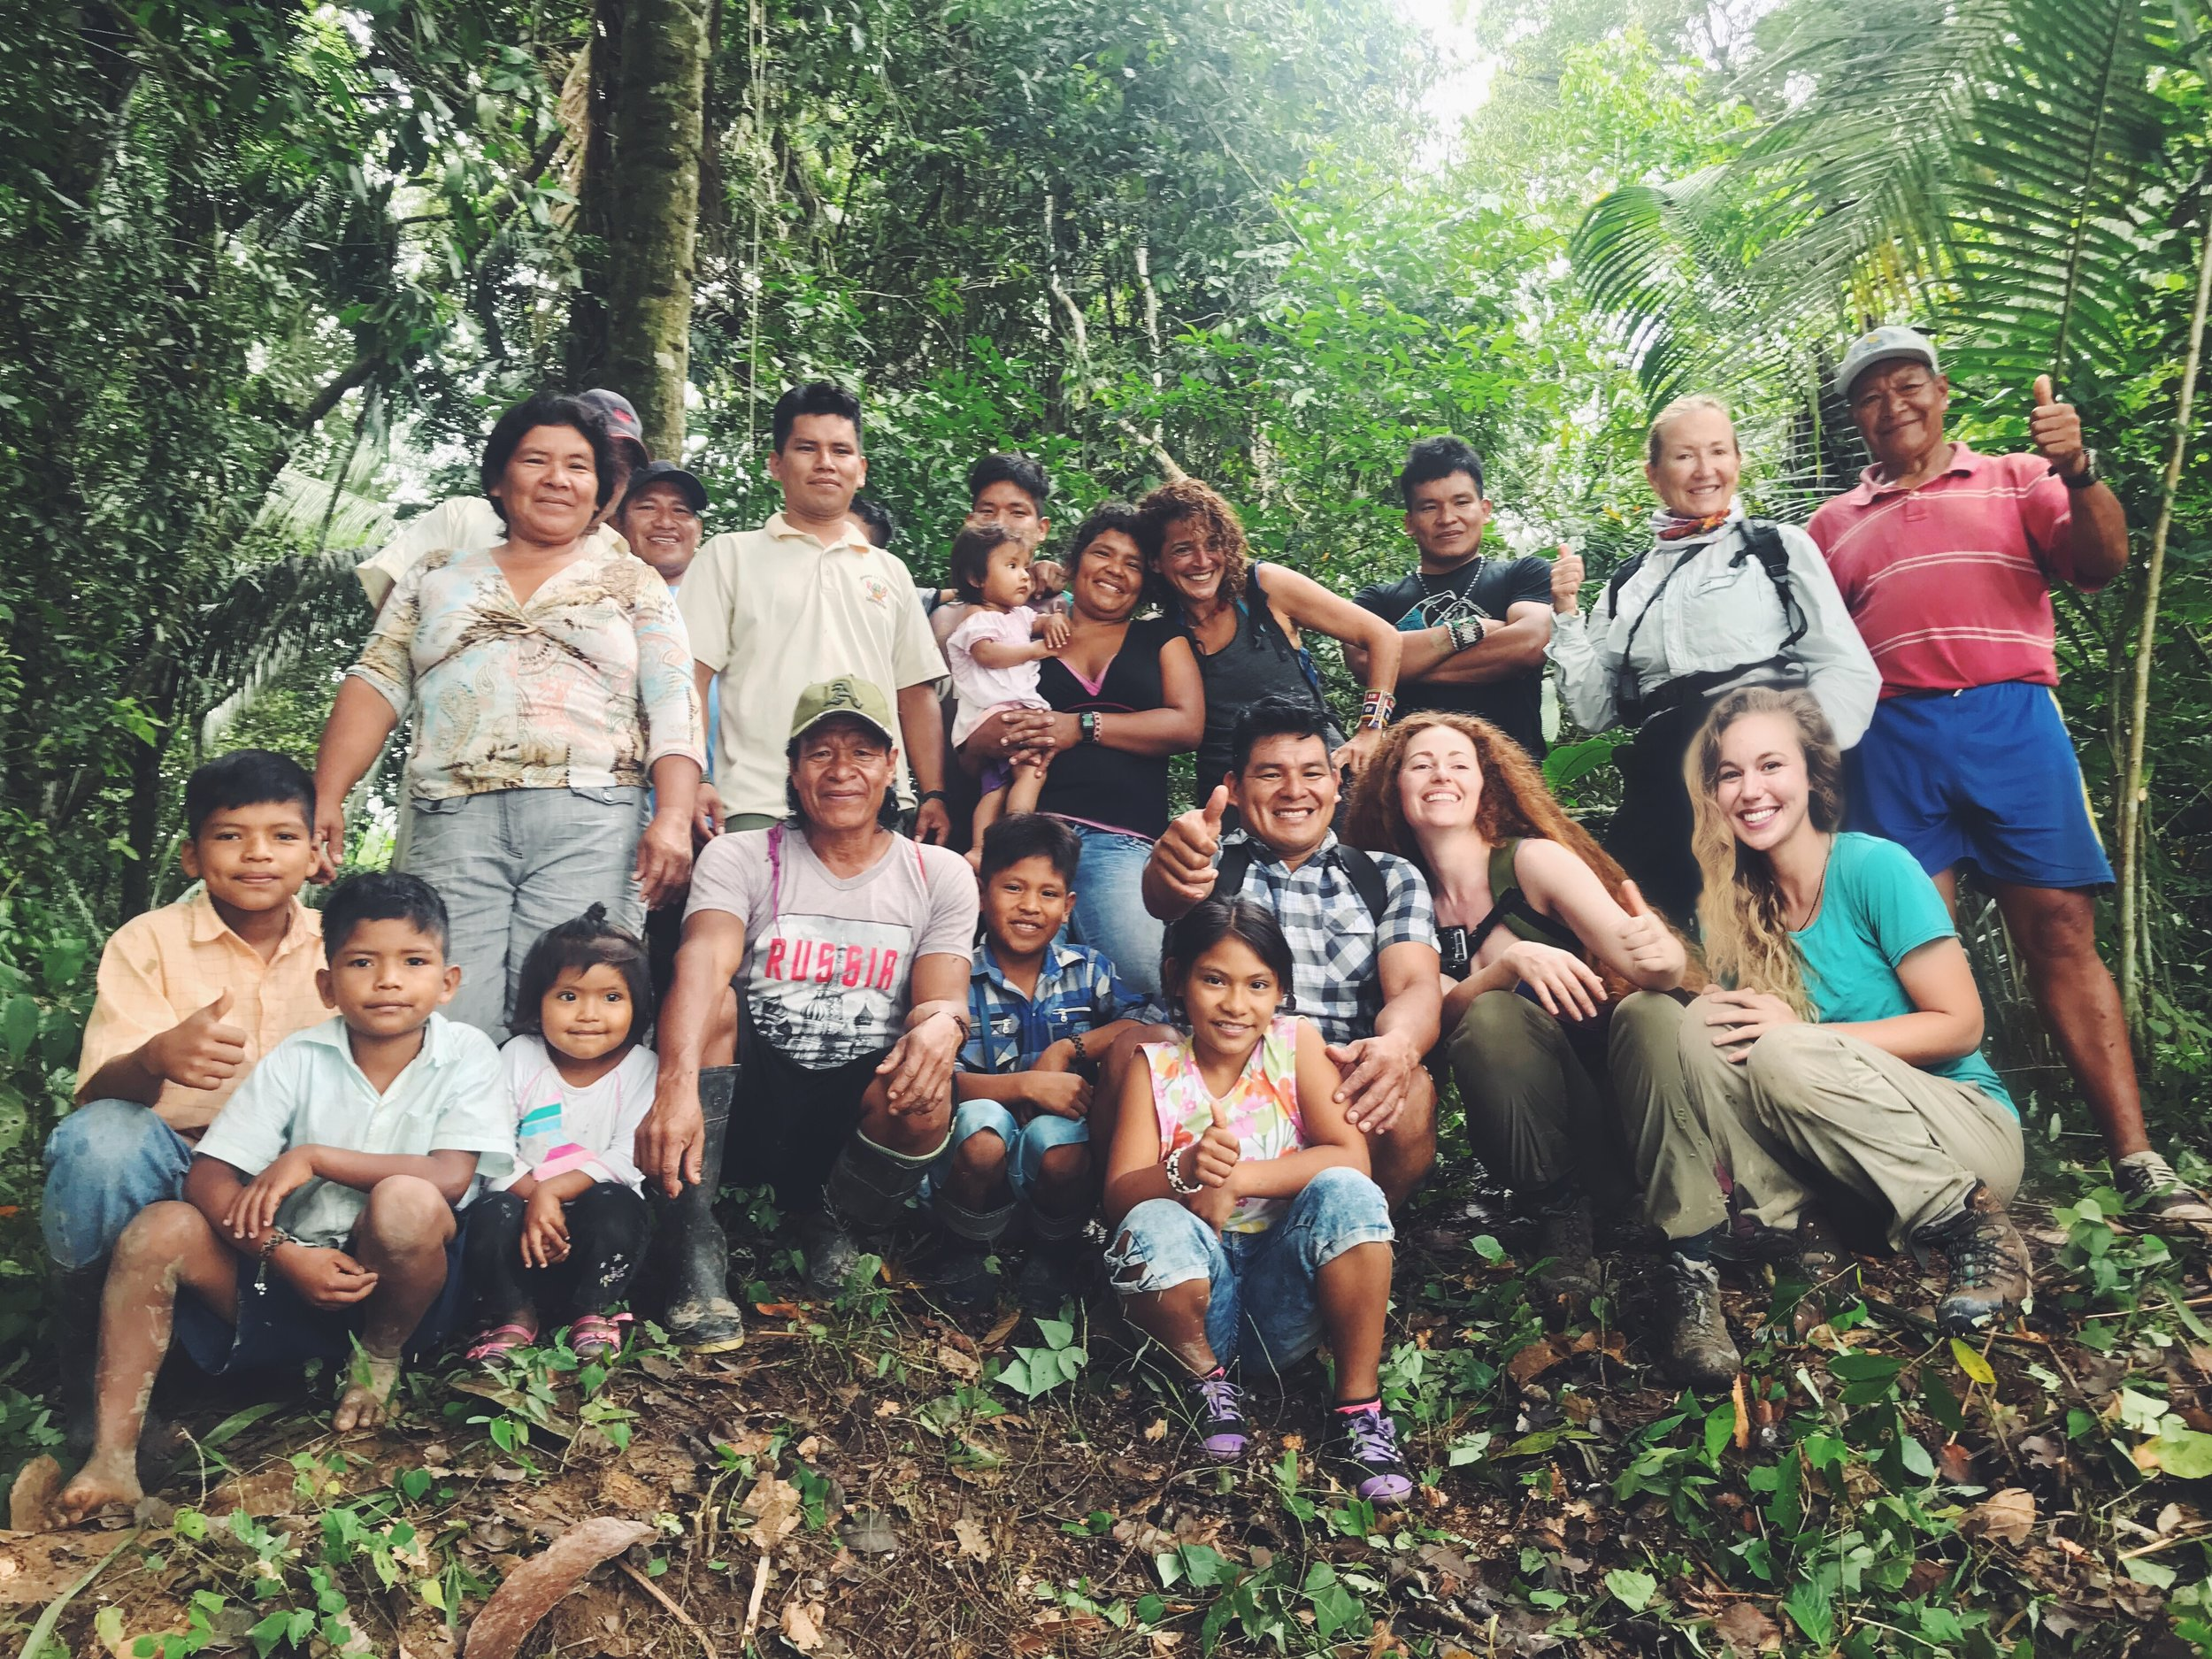 Pictured: Members of the community of Lucerna, Peru, with executive director Samantha Zwicker and Hoja Nueva team members